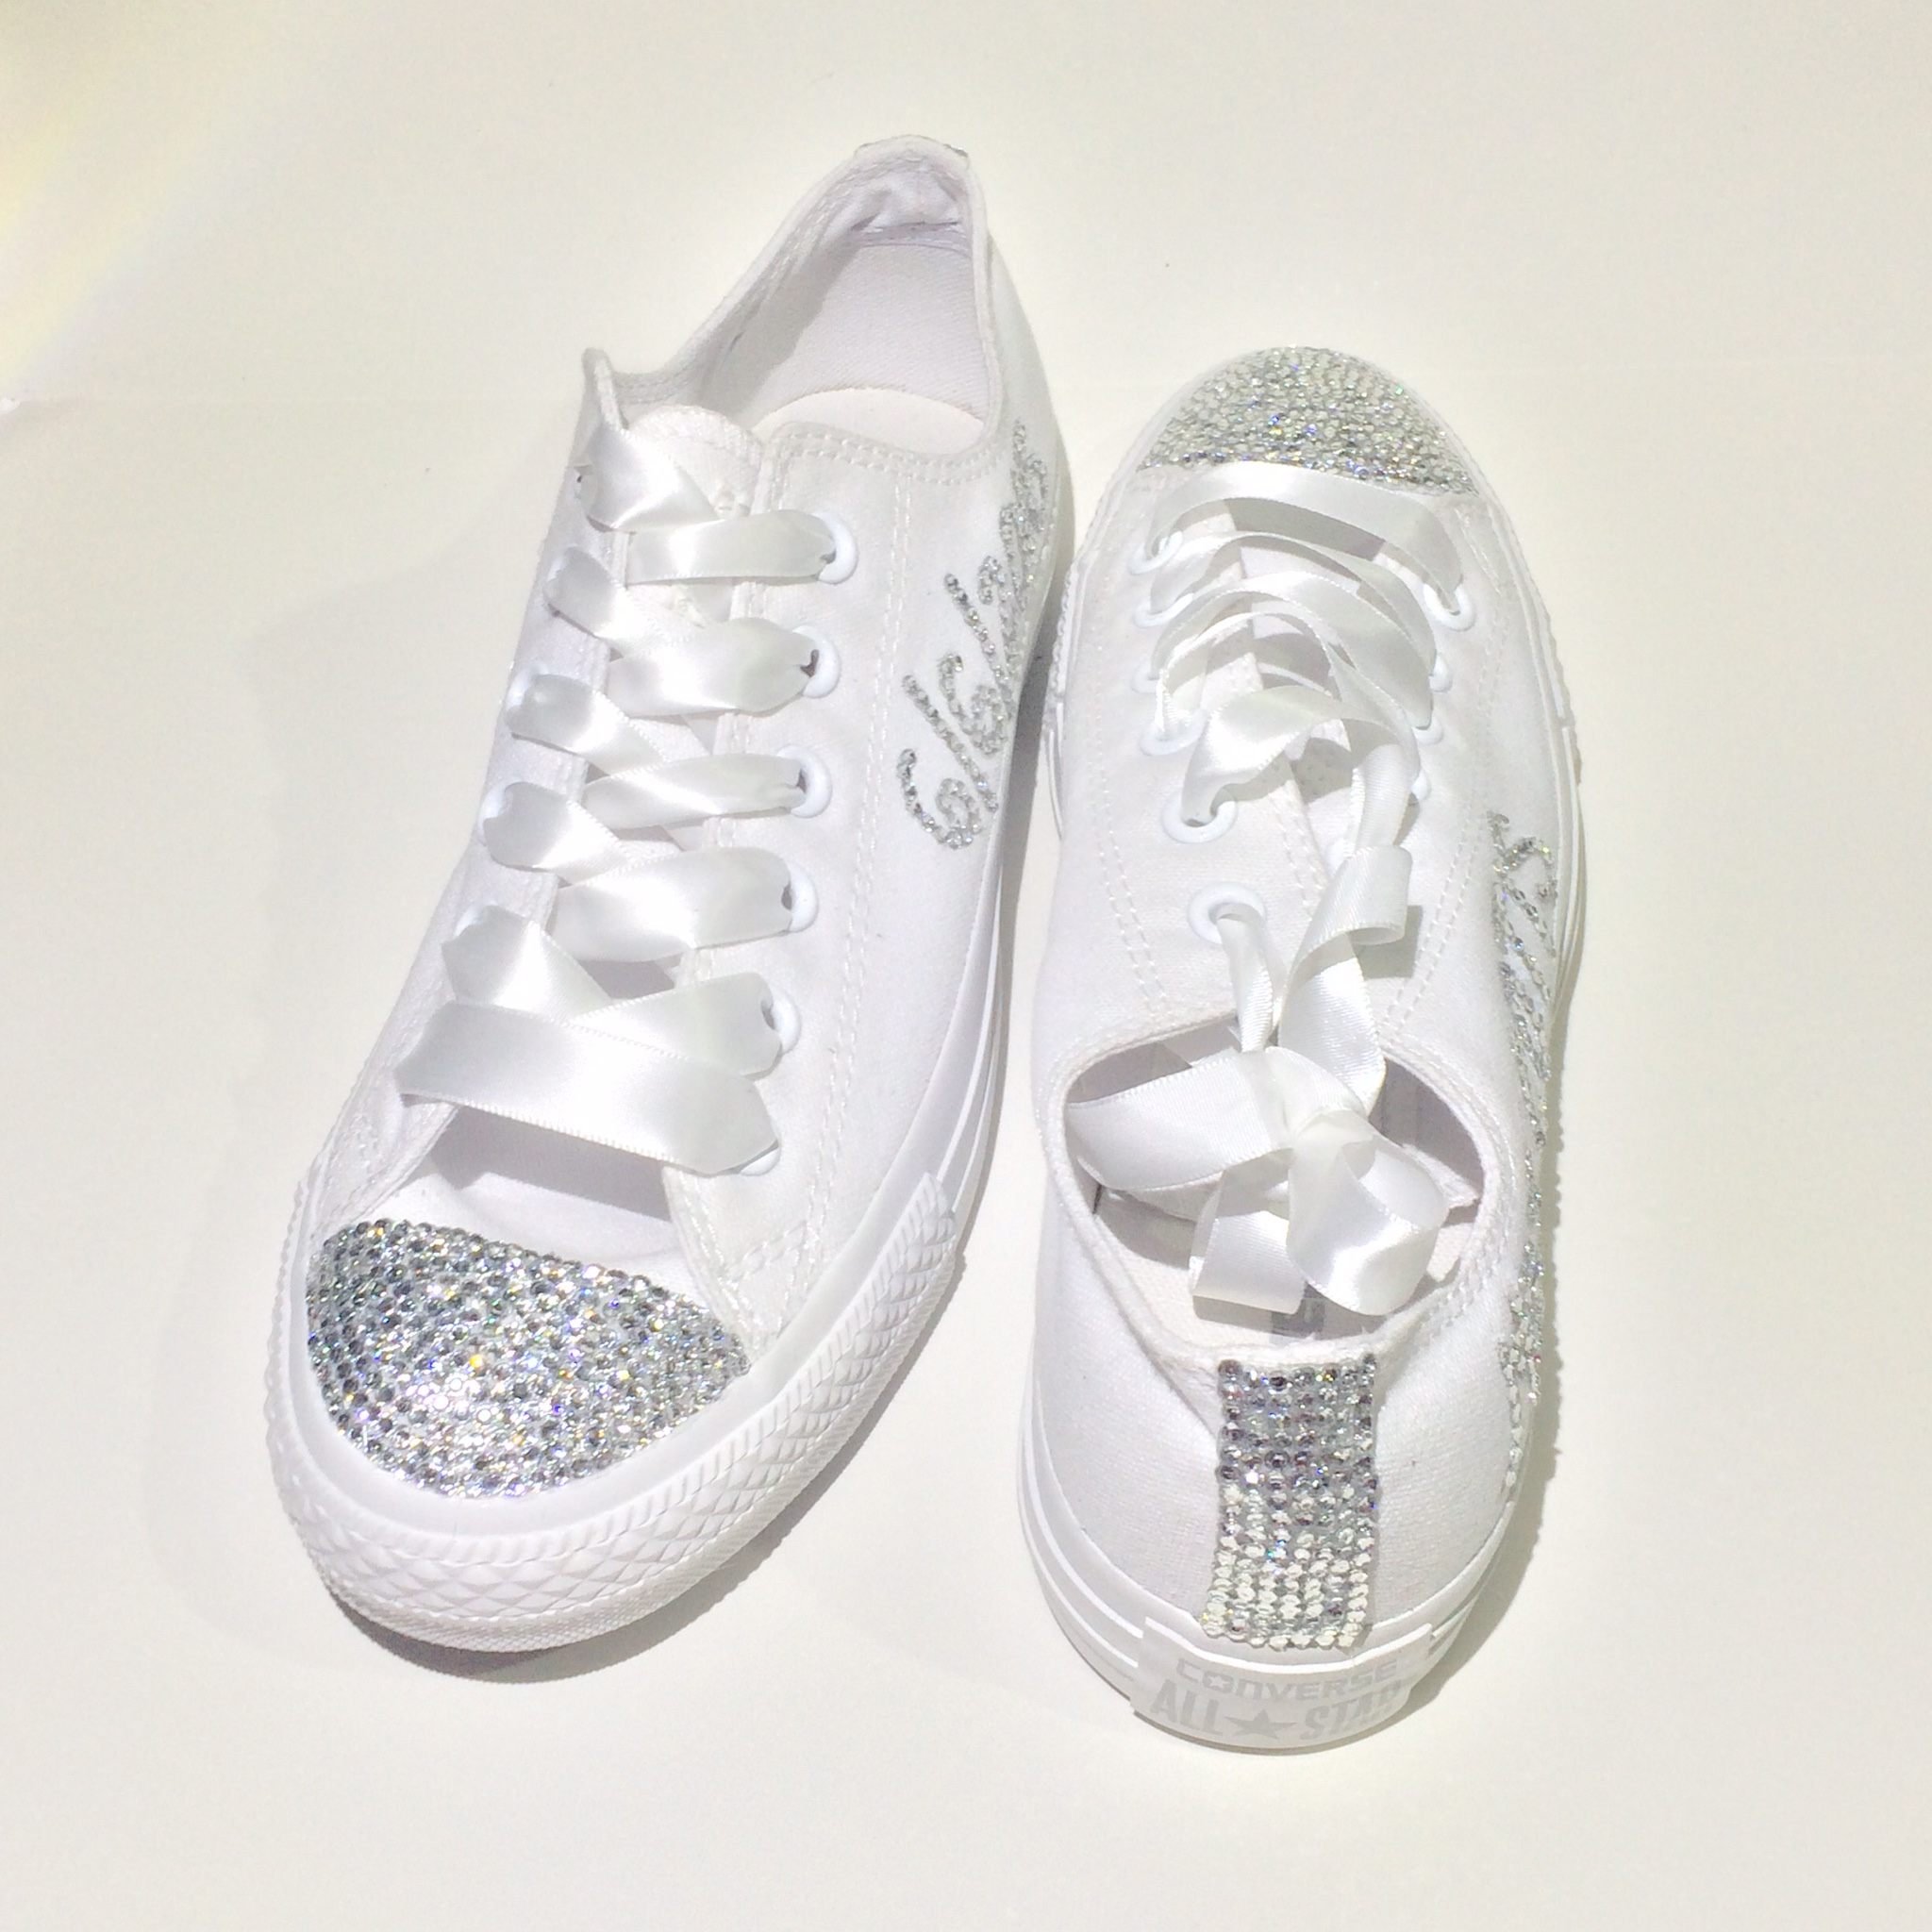 bling wedding shoes for bride photo - 1